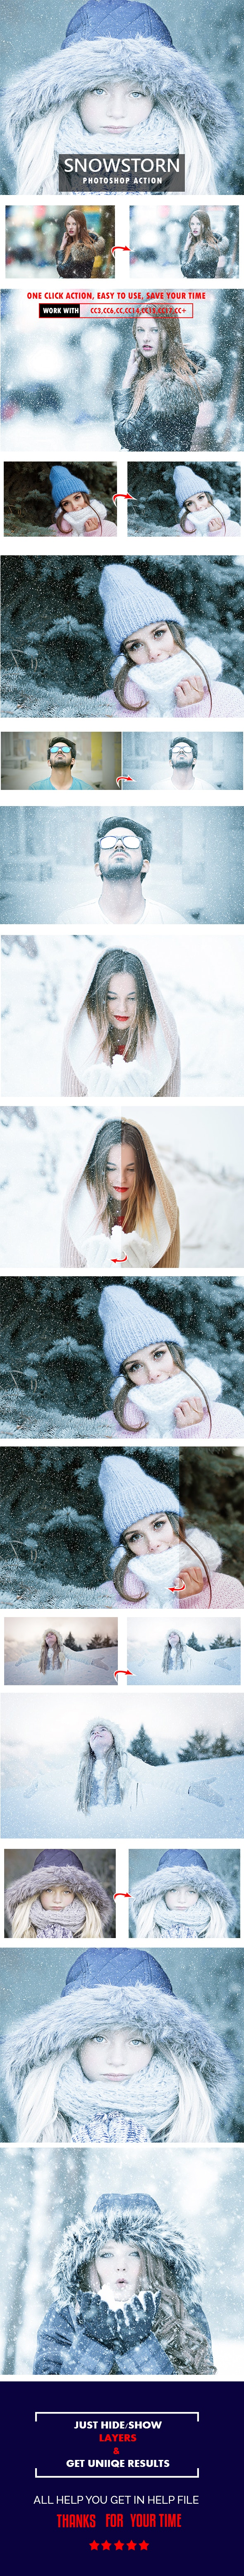 Snowstorm Photoshop Action - Photo Effects Actions